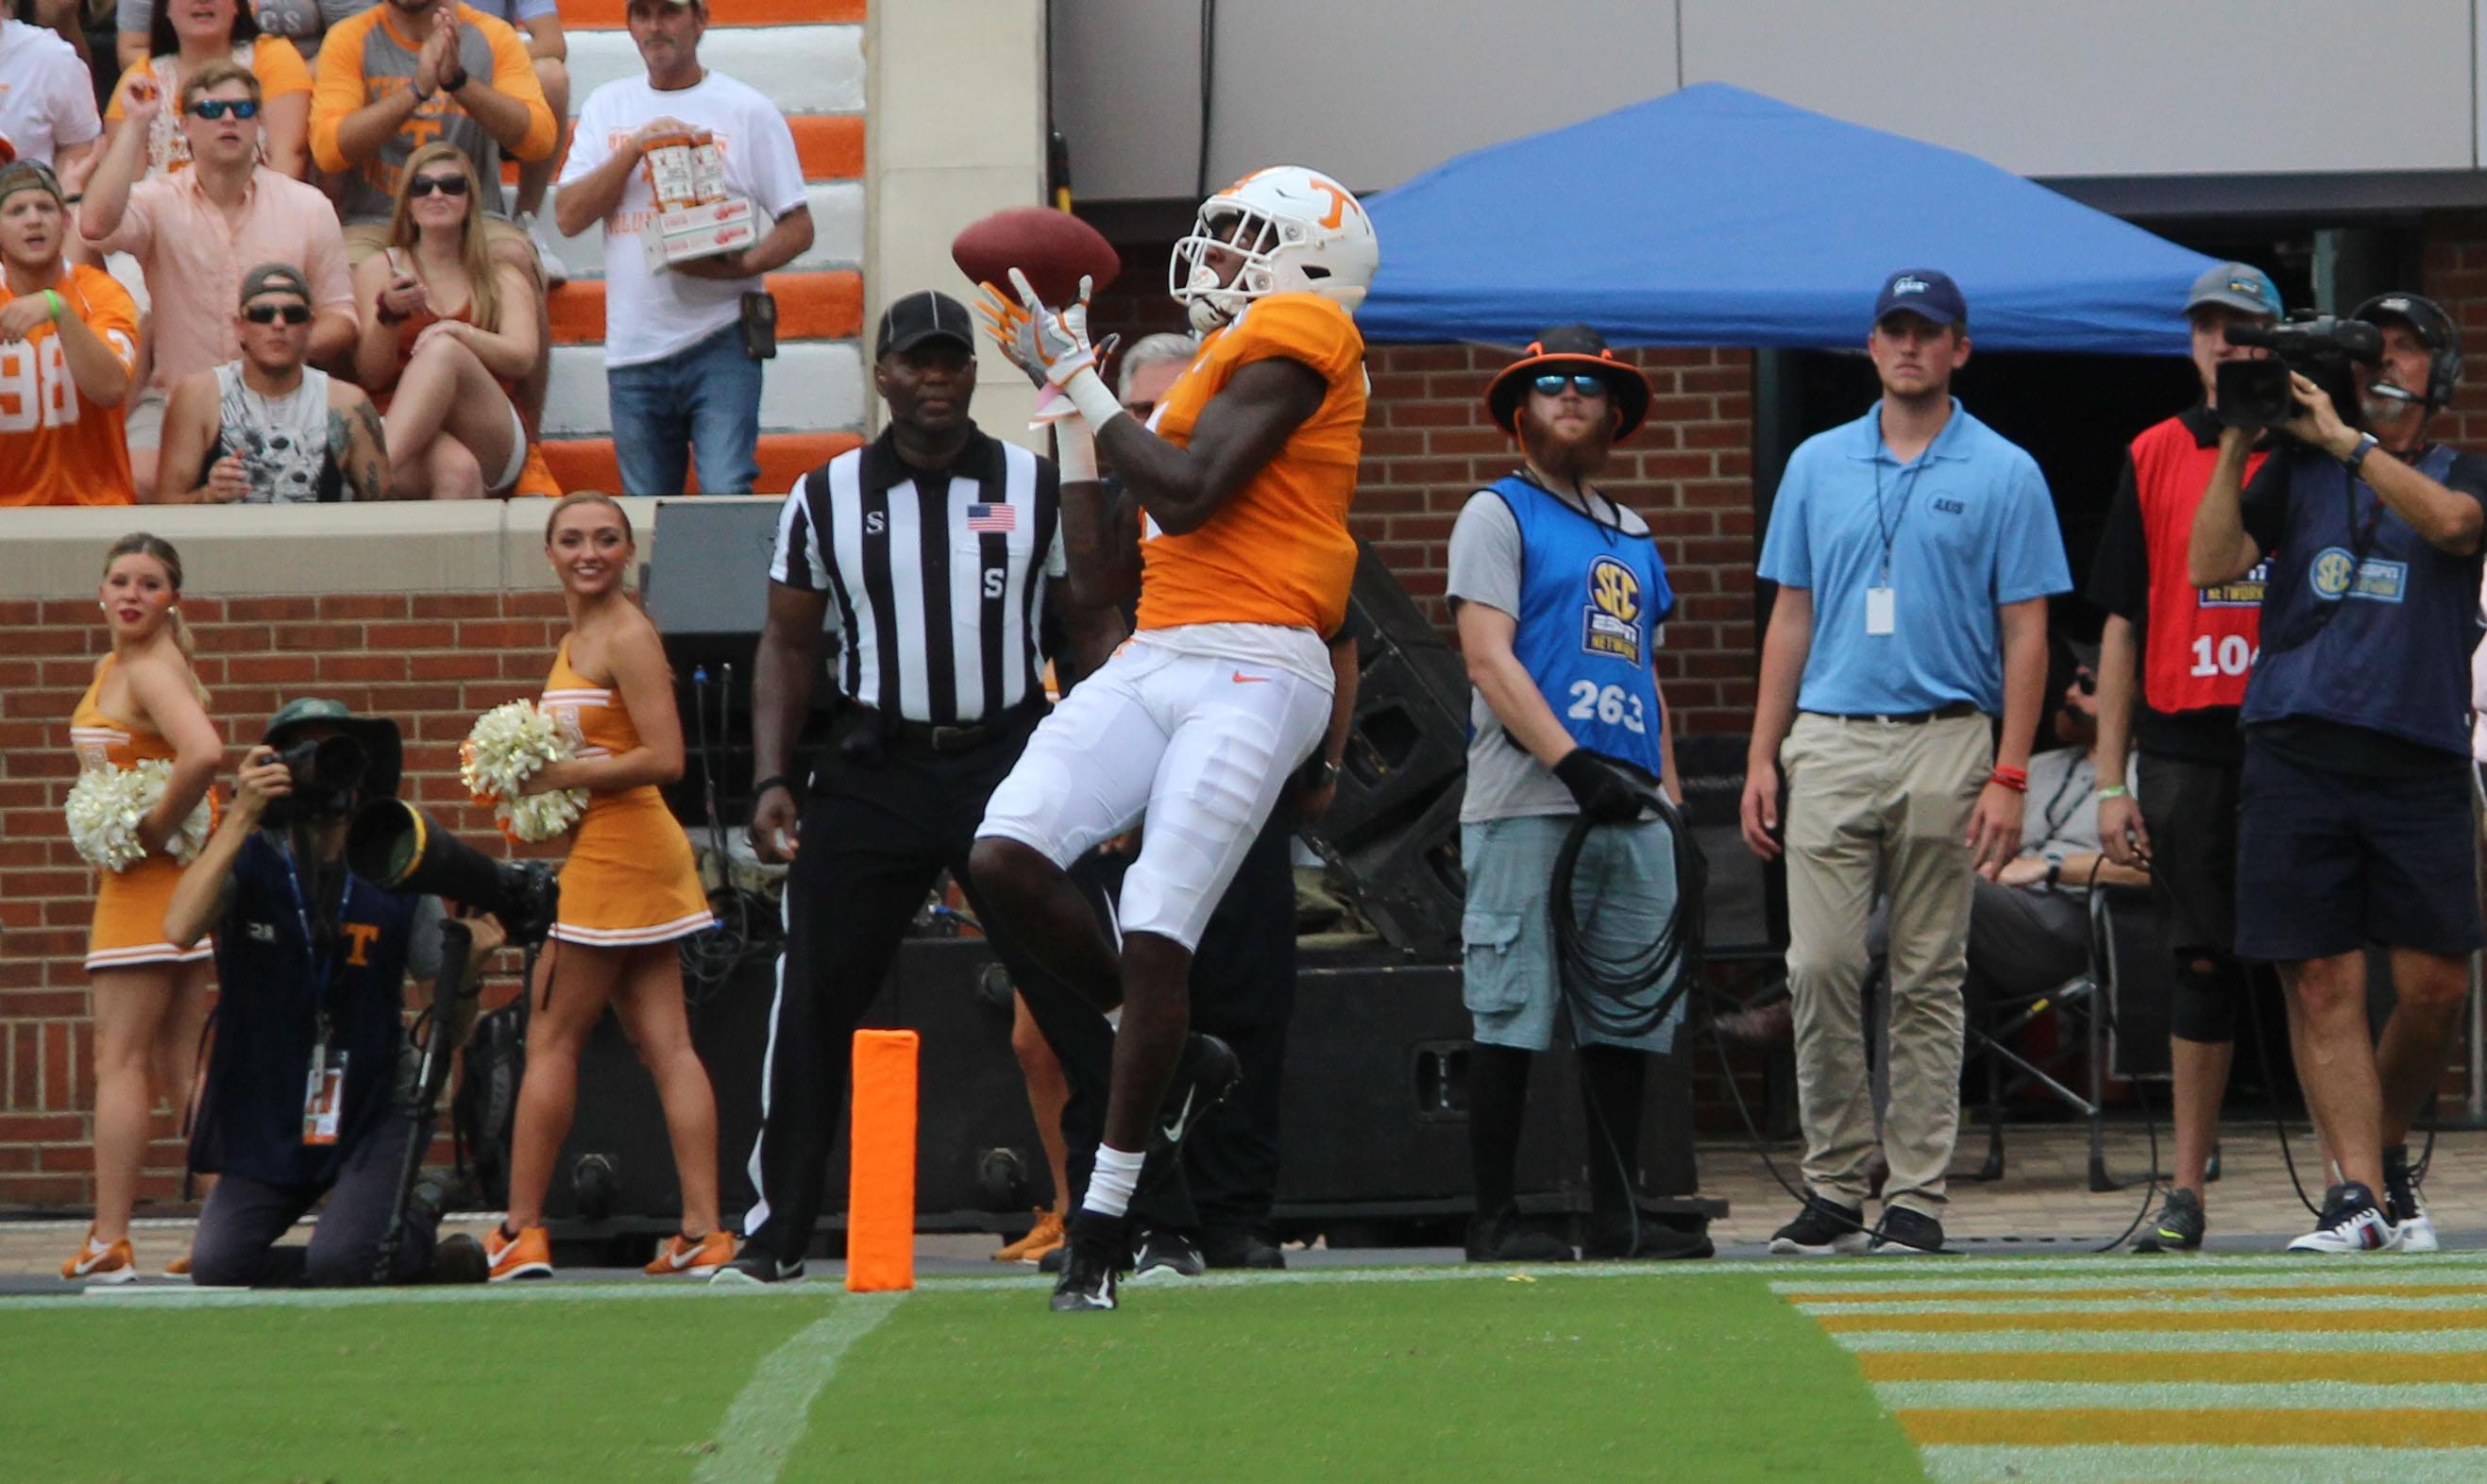 Silverberg: Vols get complete performance in win